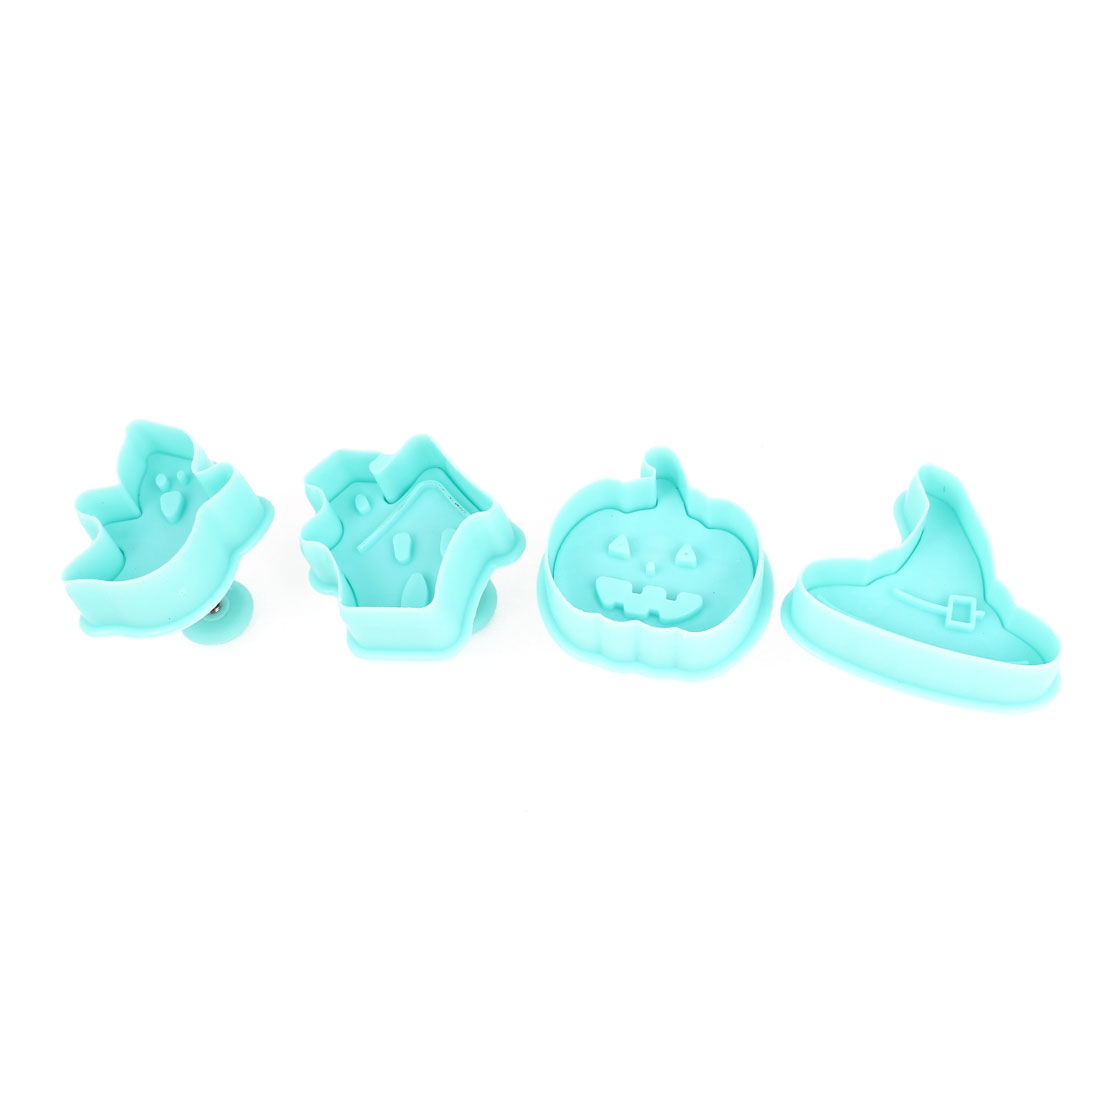 Cyan Halloween Ghost Pumpkin Shaped Craft Paste Cake DIY Plunger Cutters 4 Pcs